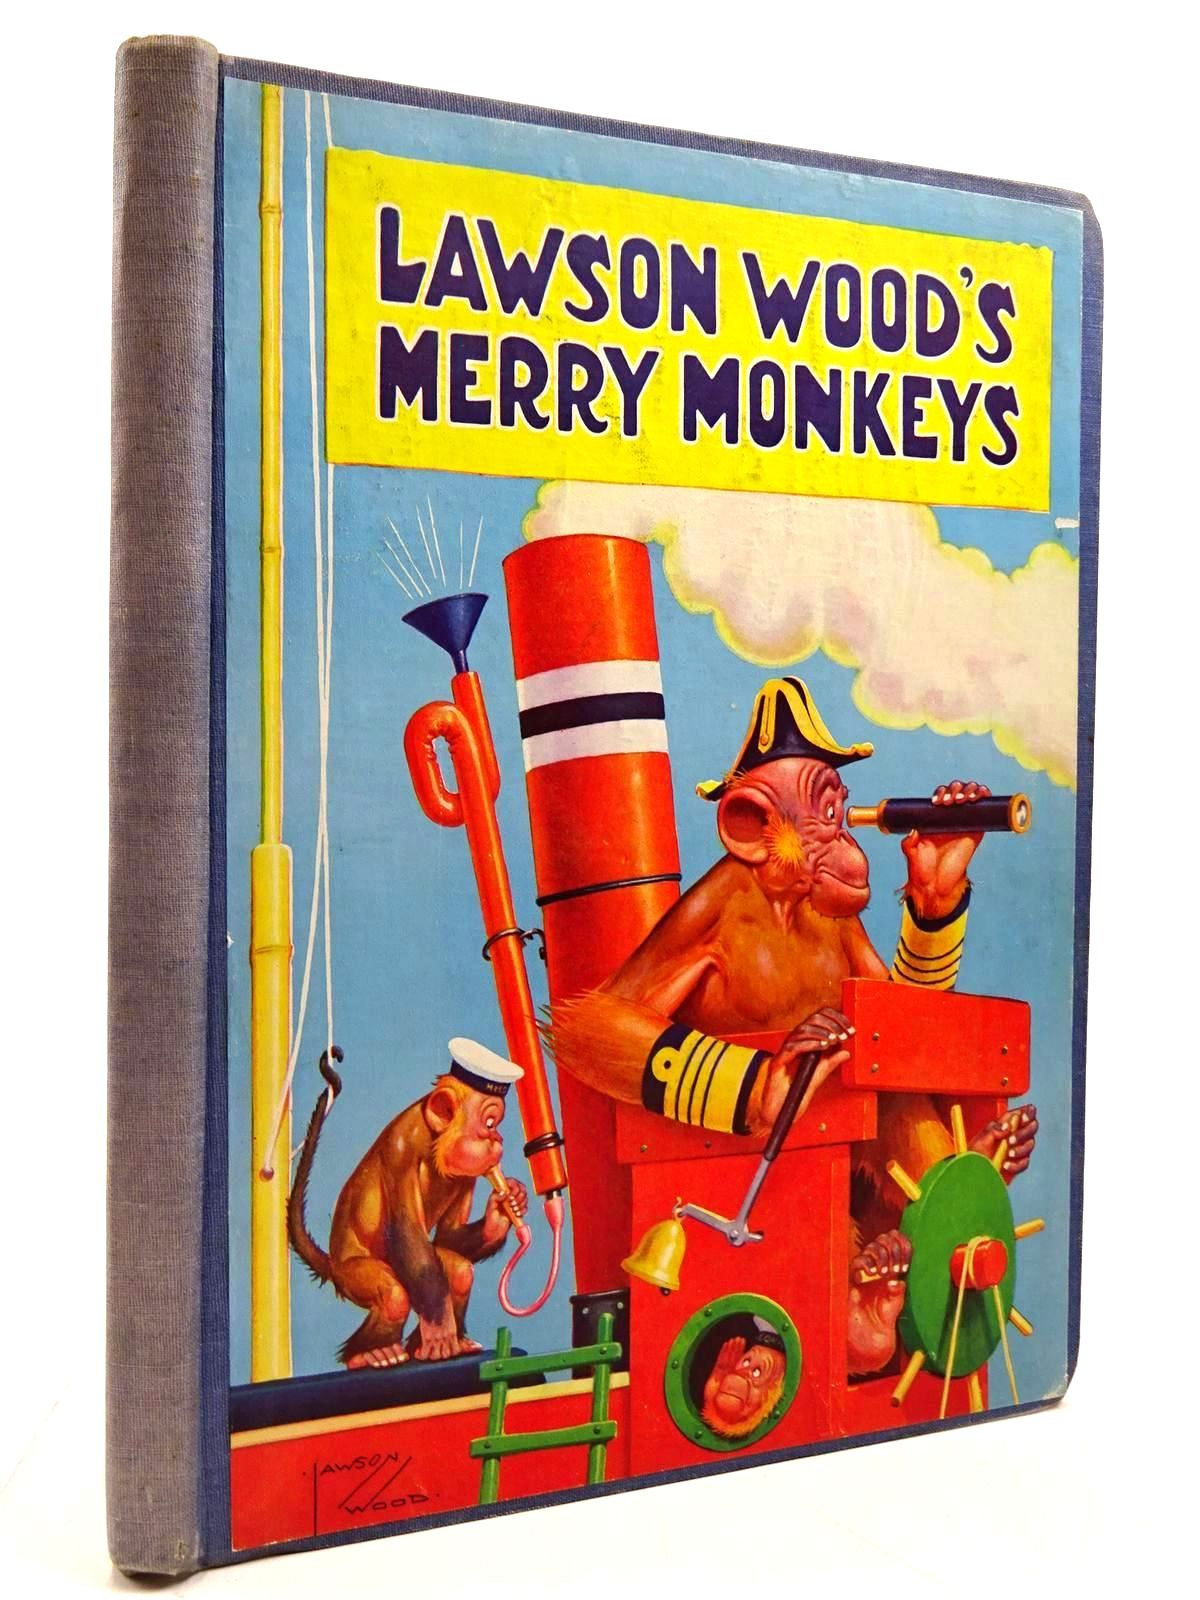 Photo of LAWSON WOOD'S MERRY MONKEYS written by Wood, Lawson illustrated by Wood, Lawson published by Birn Brothers Ltd. (STOCK CODE: 2130792)  for sale by Stella & Rose's Books